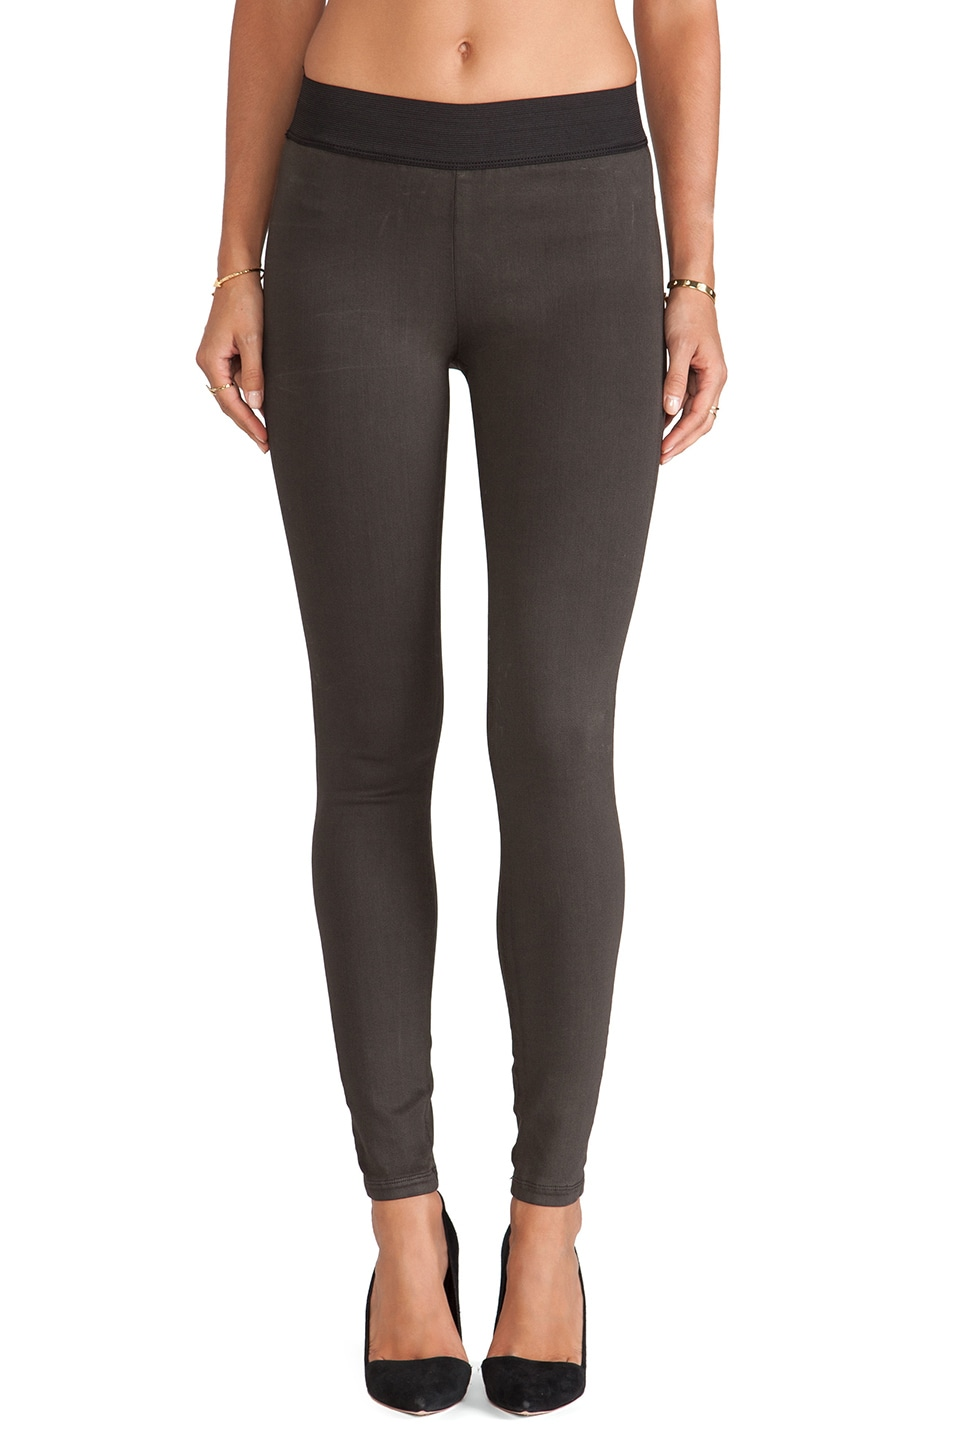 Citizens of Humanity Greyson Legging in Brown Suedette